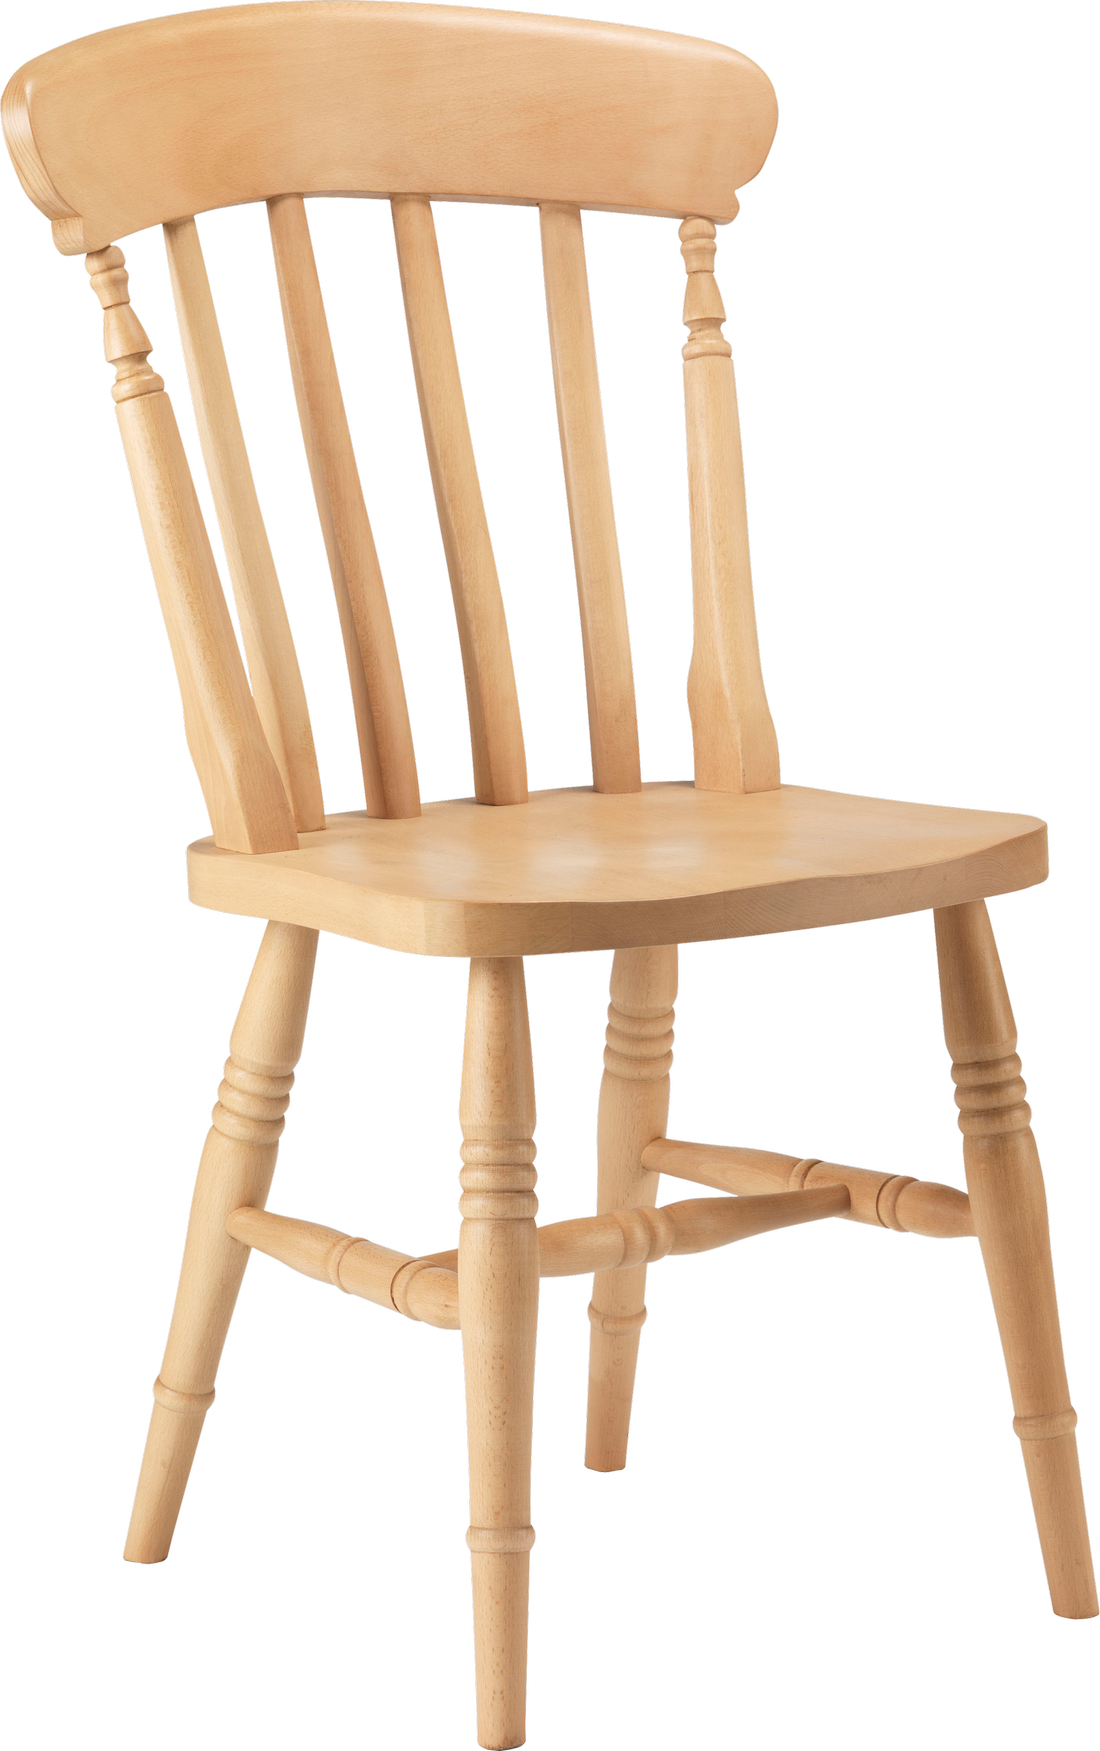 Chair Png Image Kitchen Chairs Chair Furniture